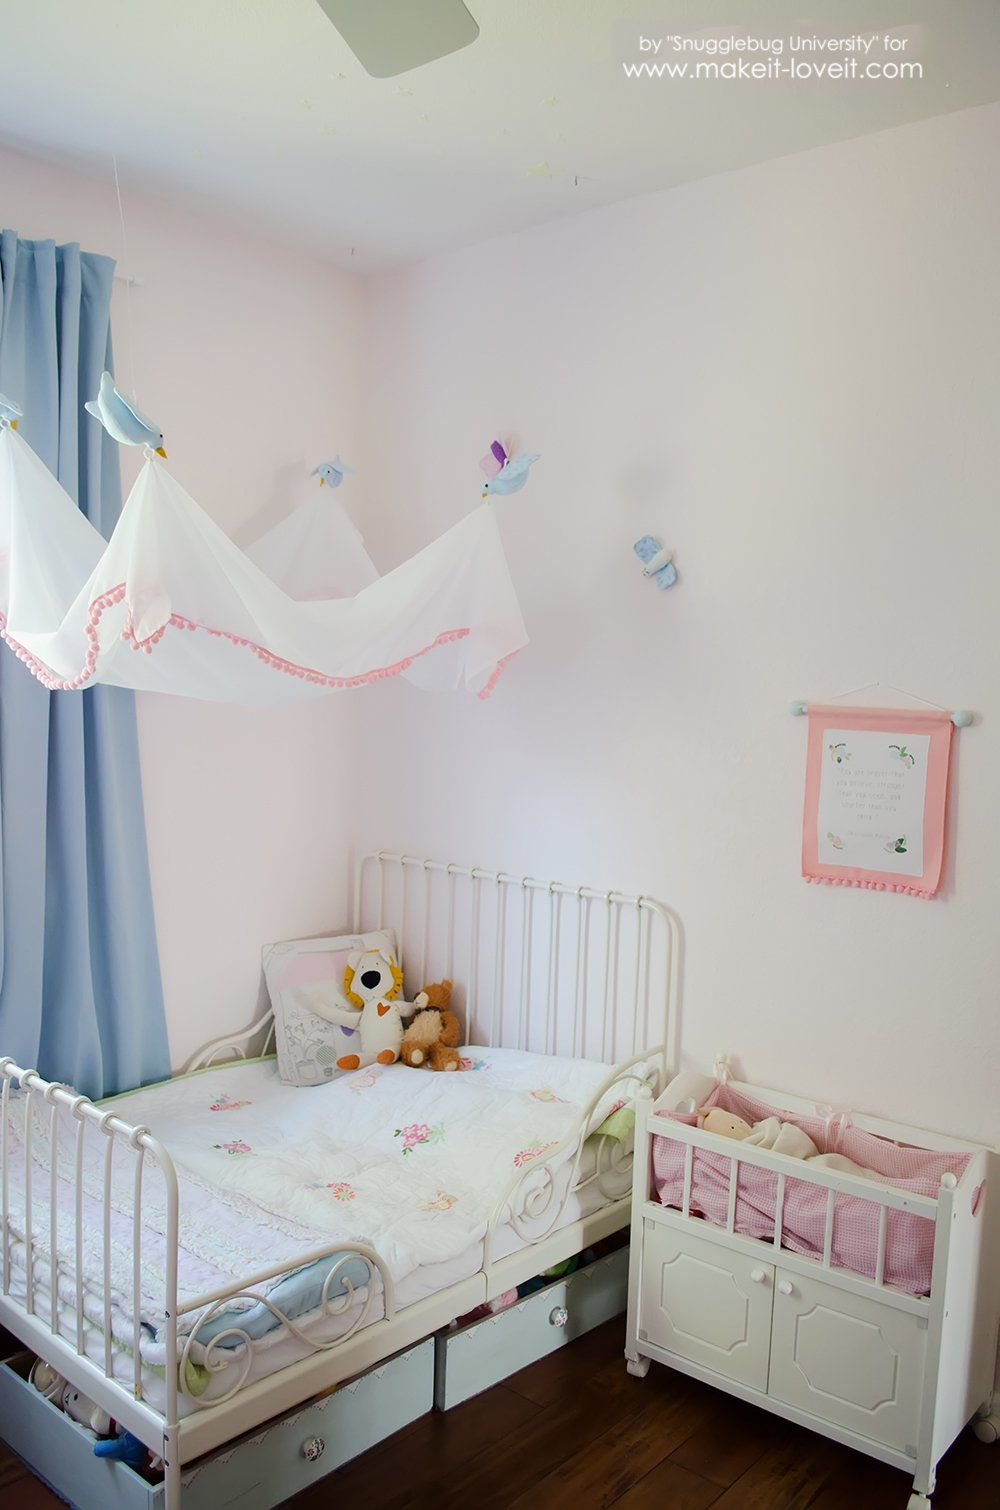 Tulle Canopy Diy Easy Diy Bird Canopyfor Above A Bed Just Like Cinderella